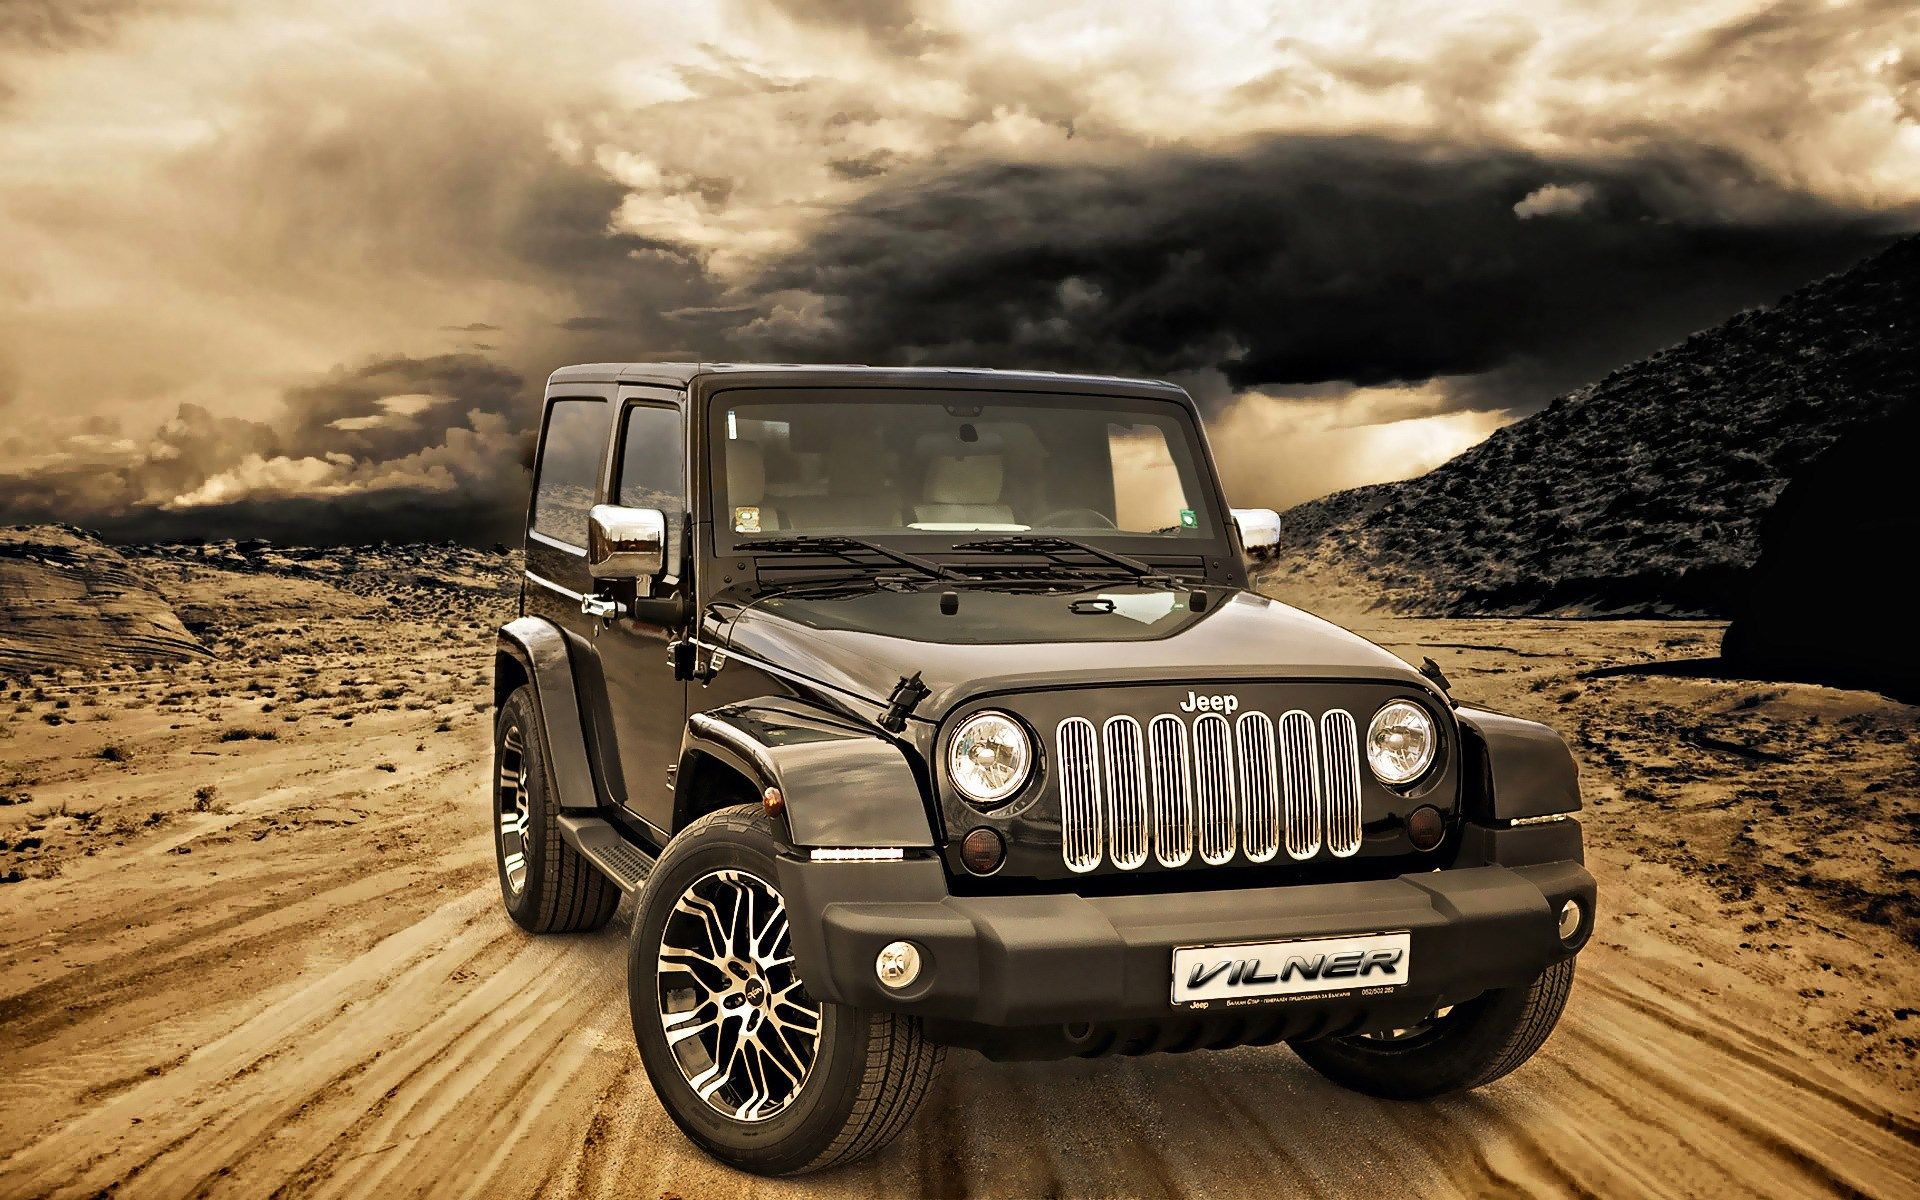 Jeep Wrangler Wallpaper Hd Ololoshenka Pinterest Jeep Jeep